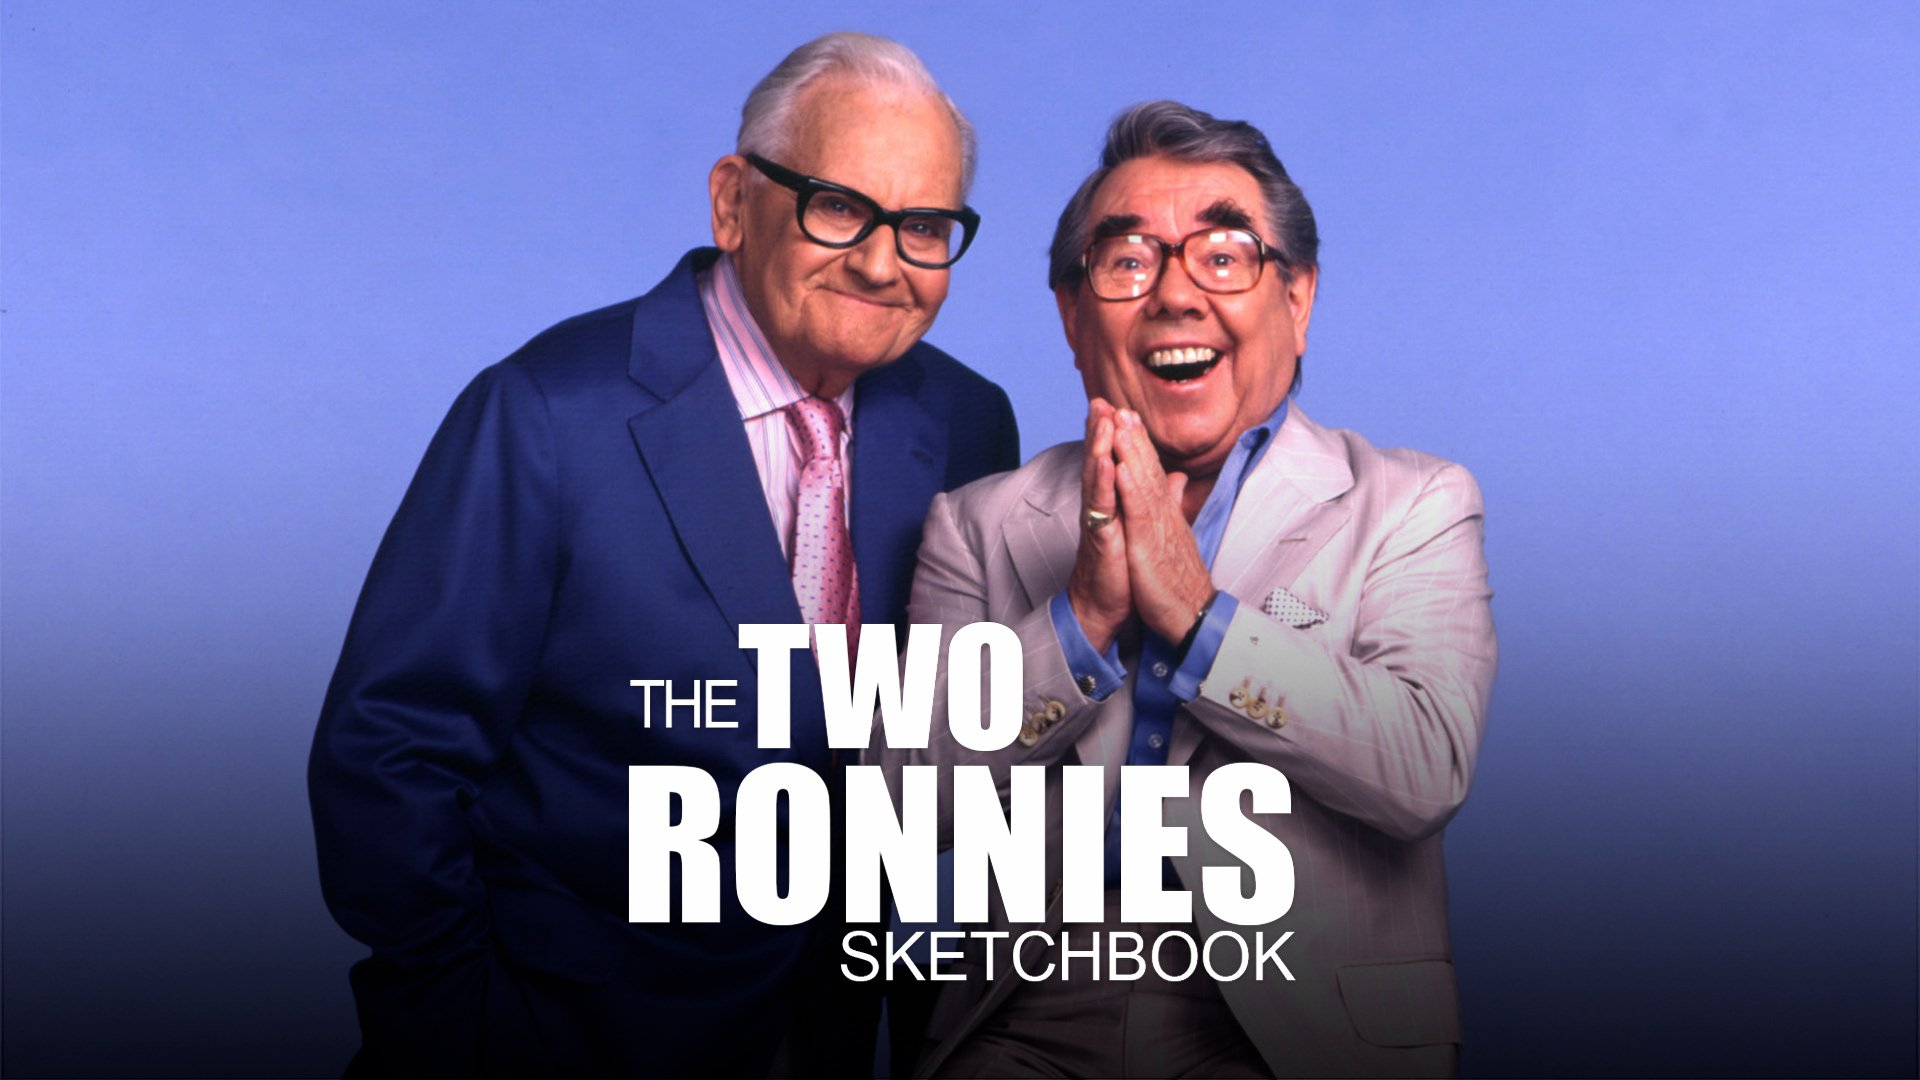 The Two Ronnies Sketchbook on BritBox UK